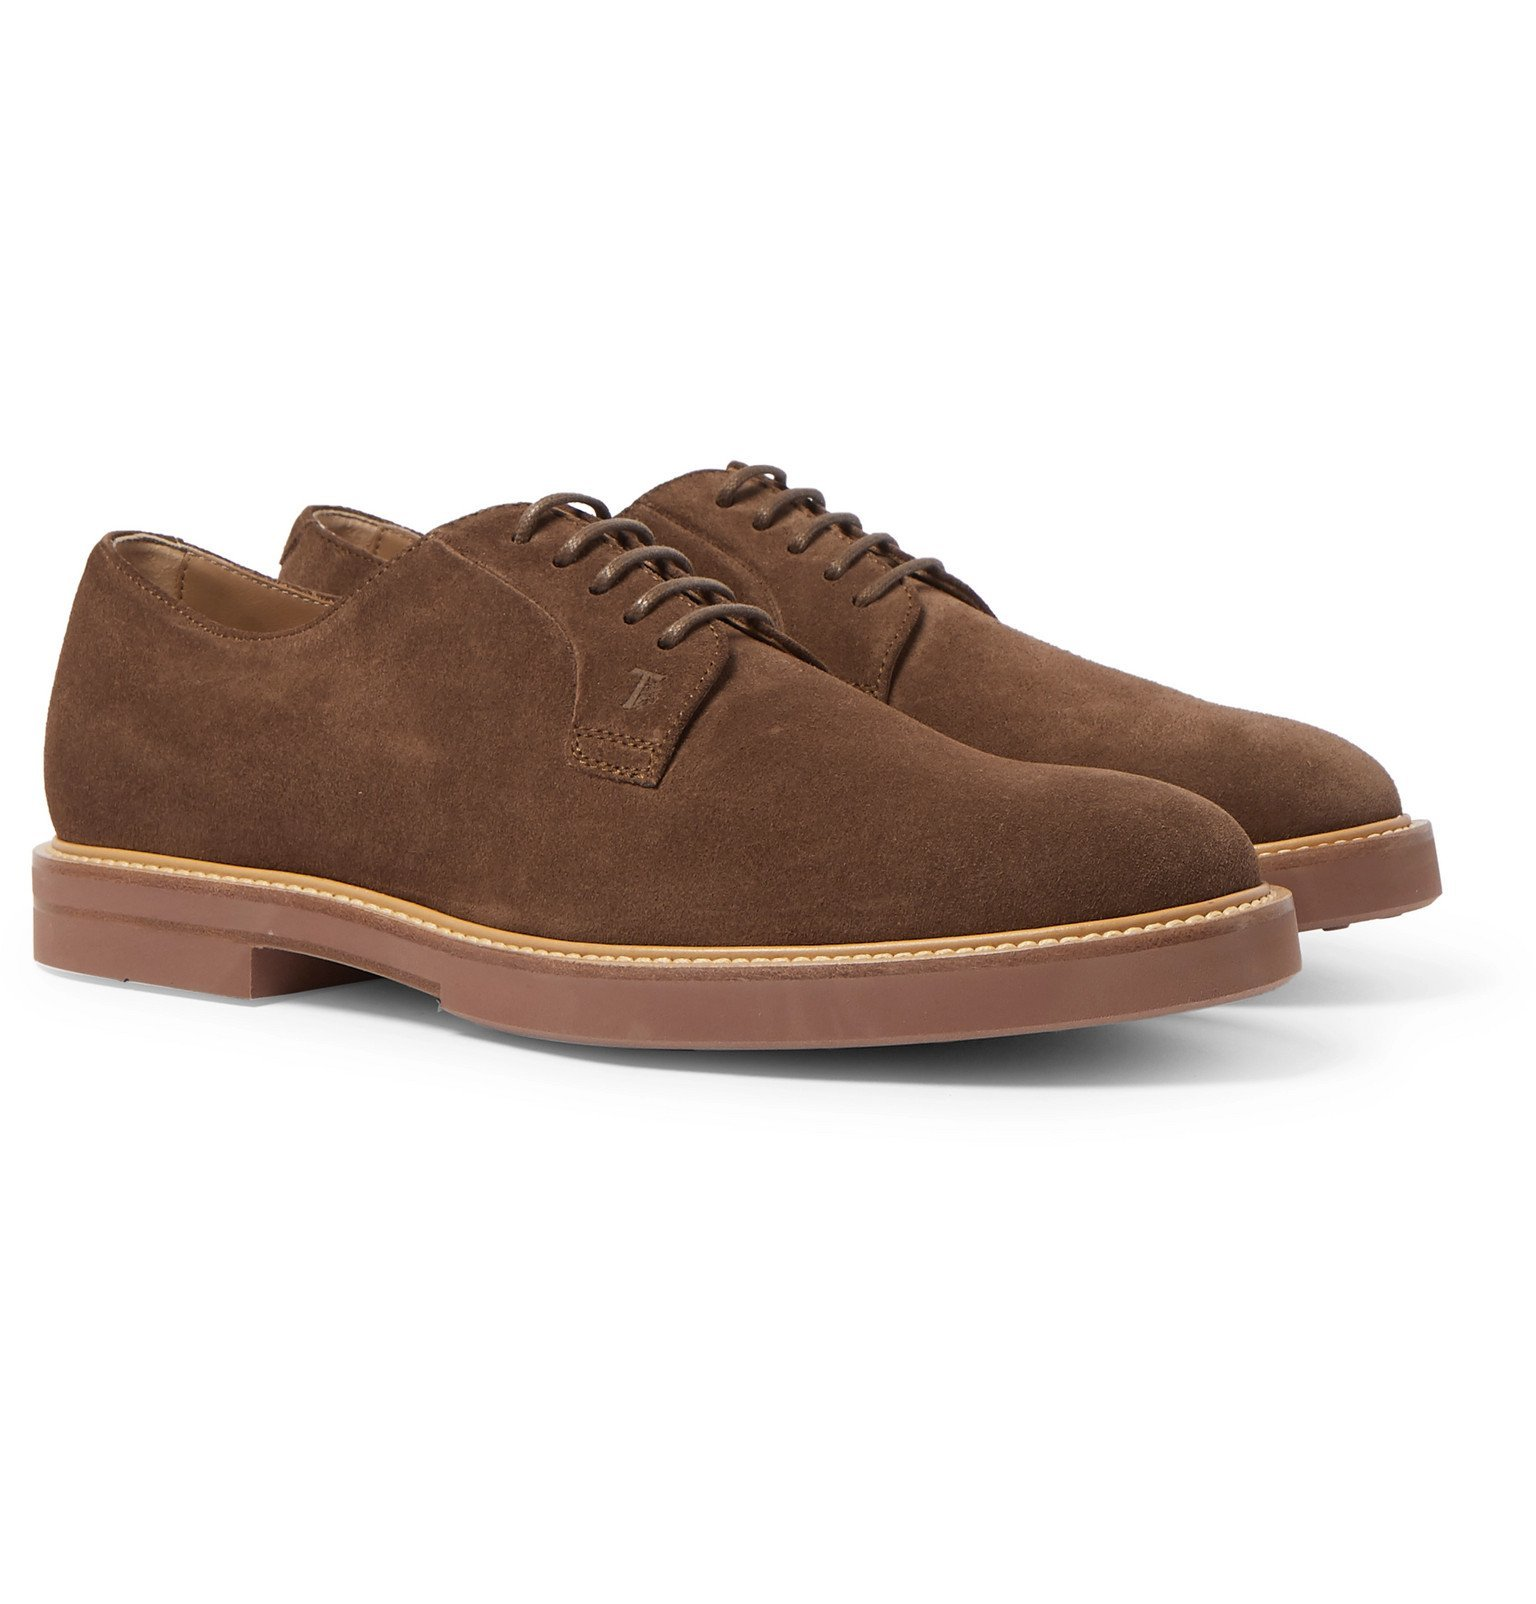 Tod's - Gommino Suede Derby Shoes - Brown